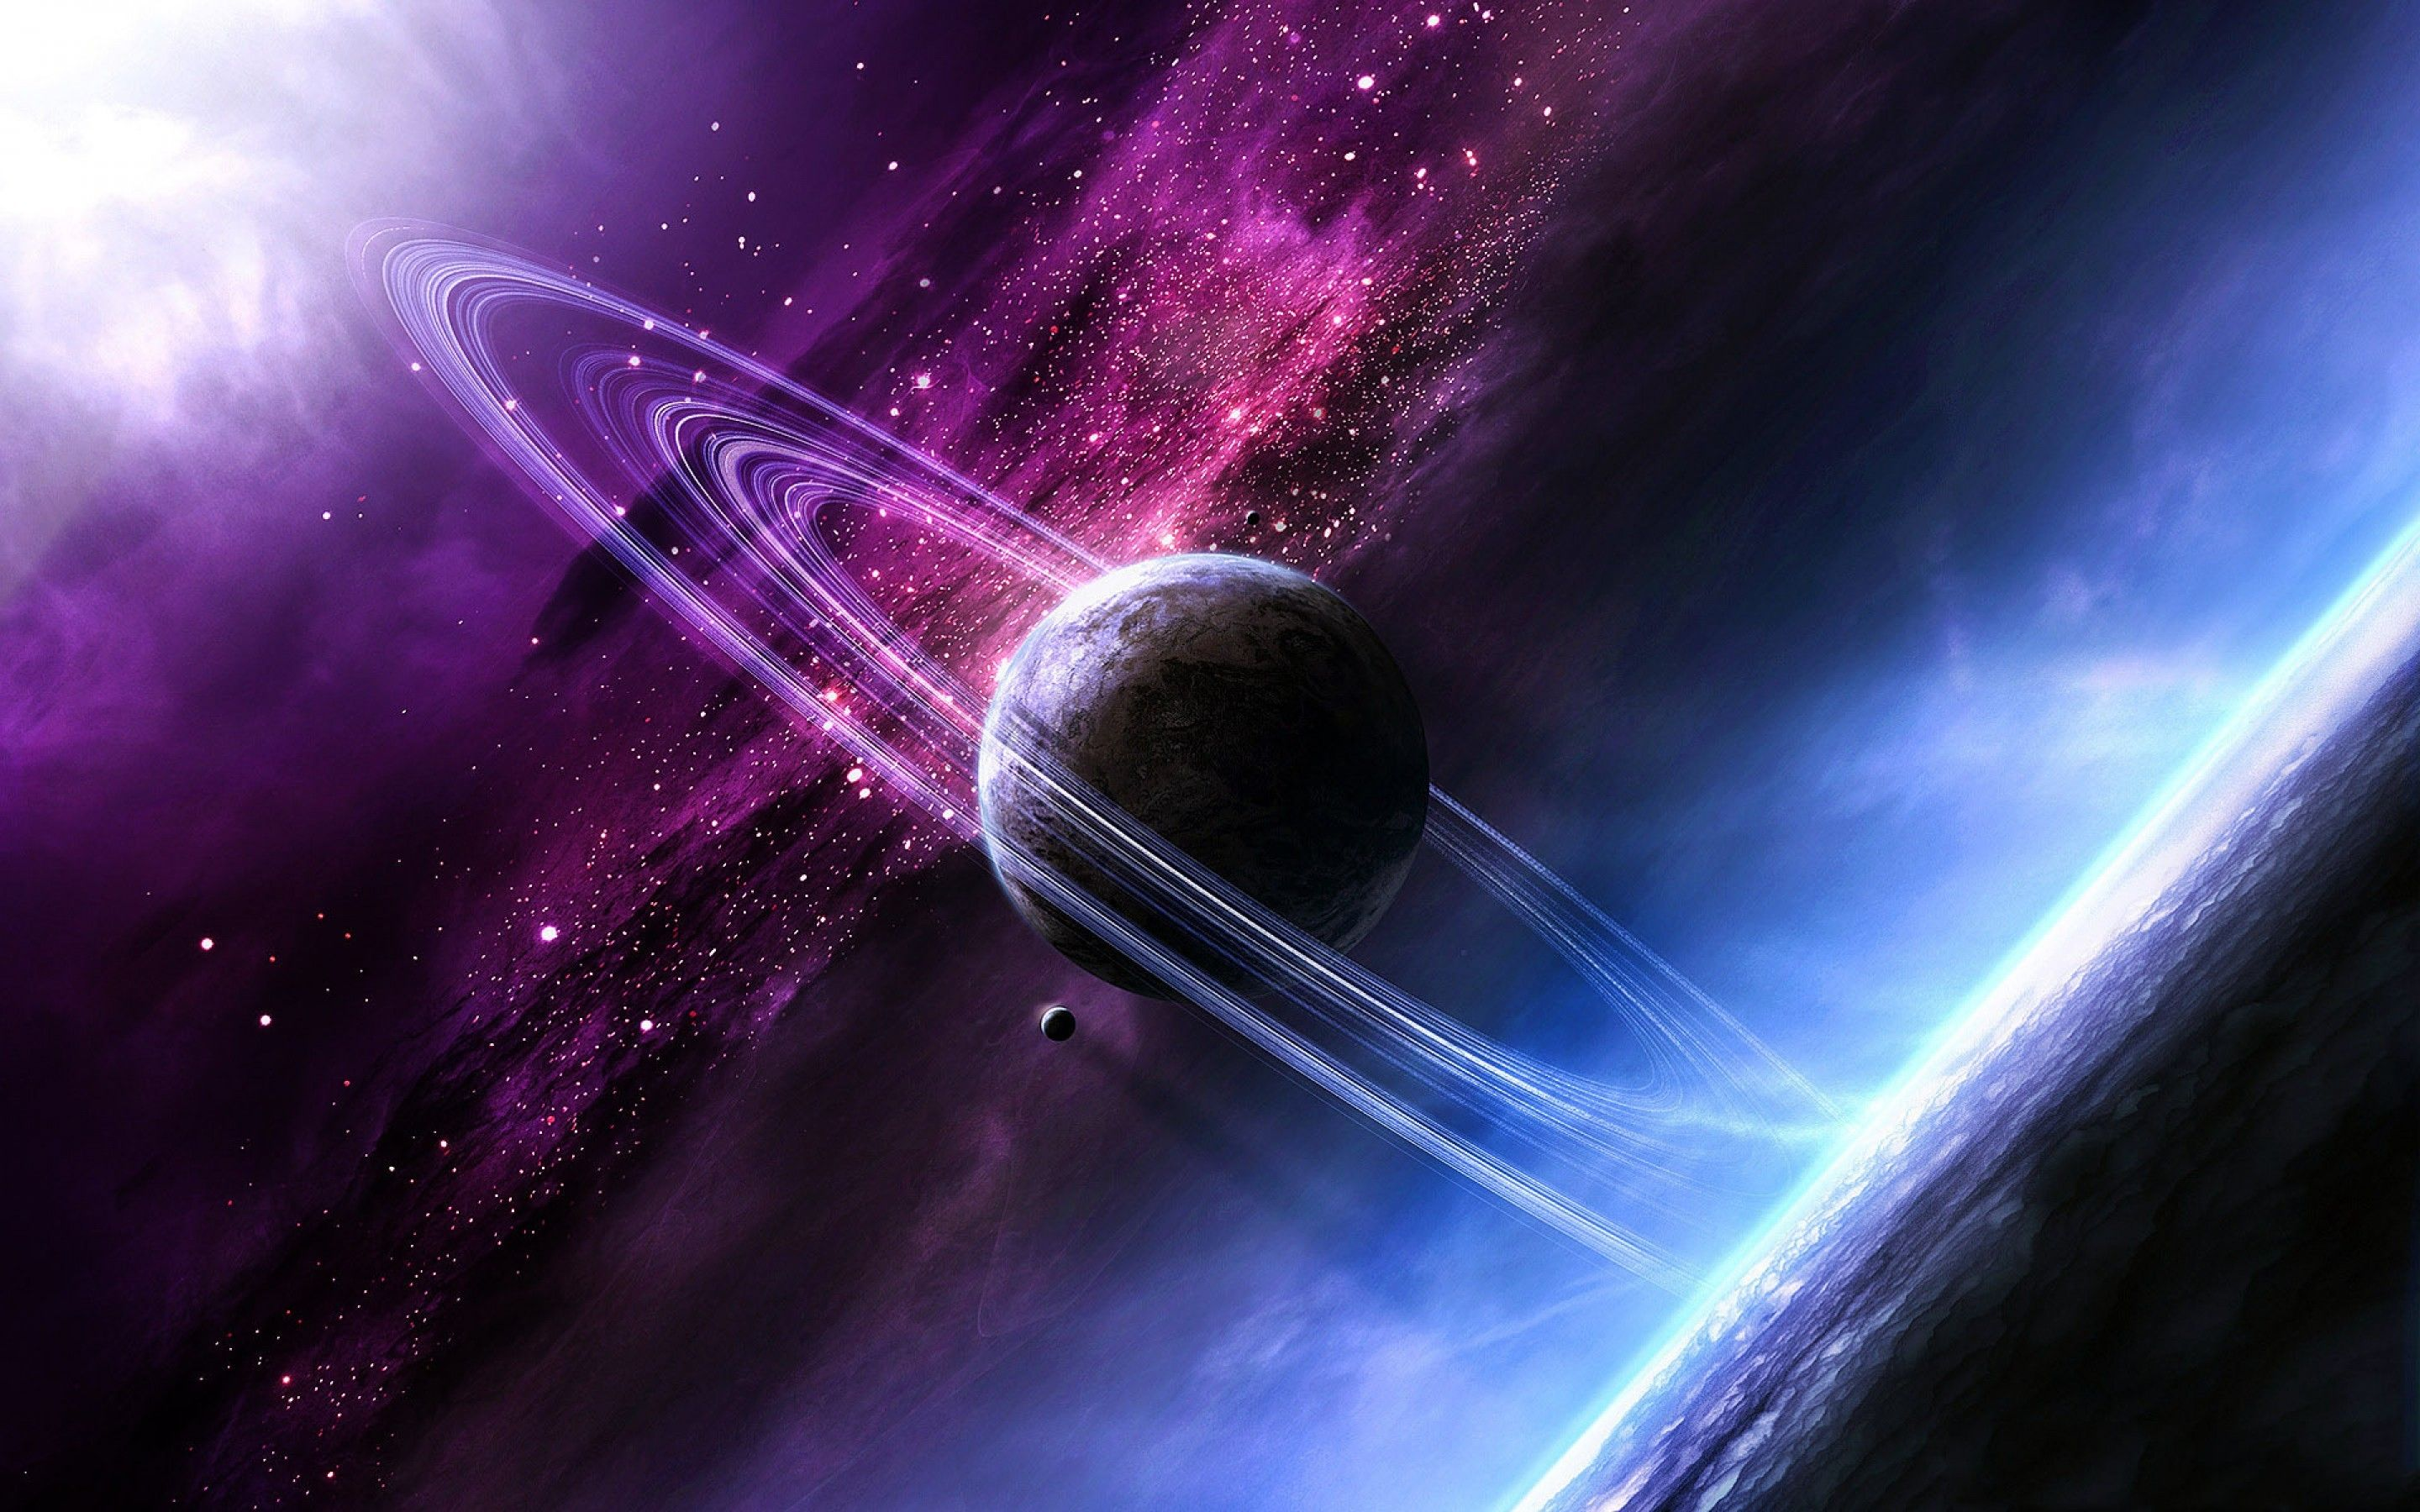 Cool Pics Of Space